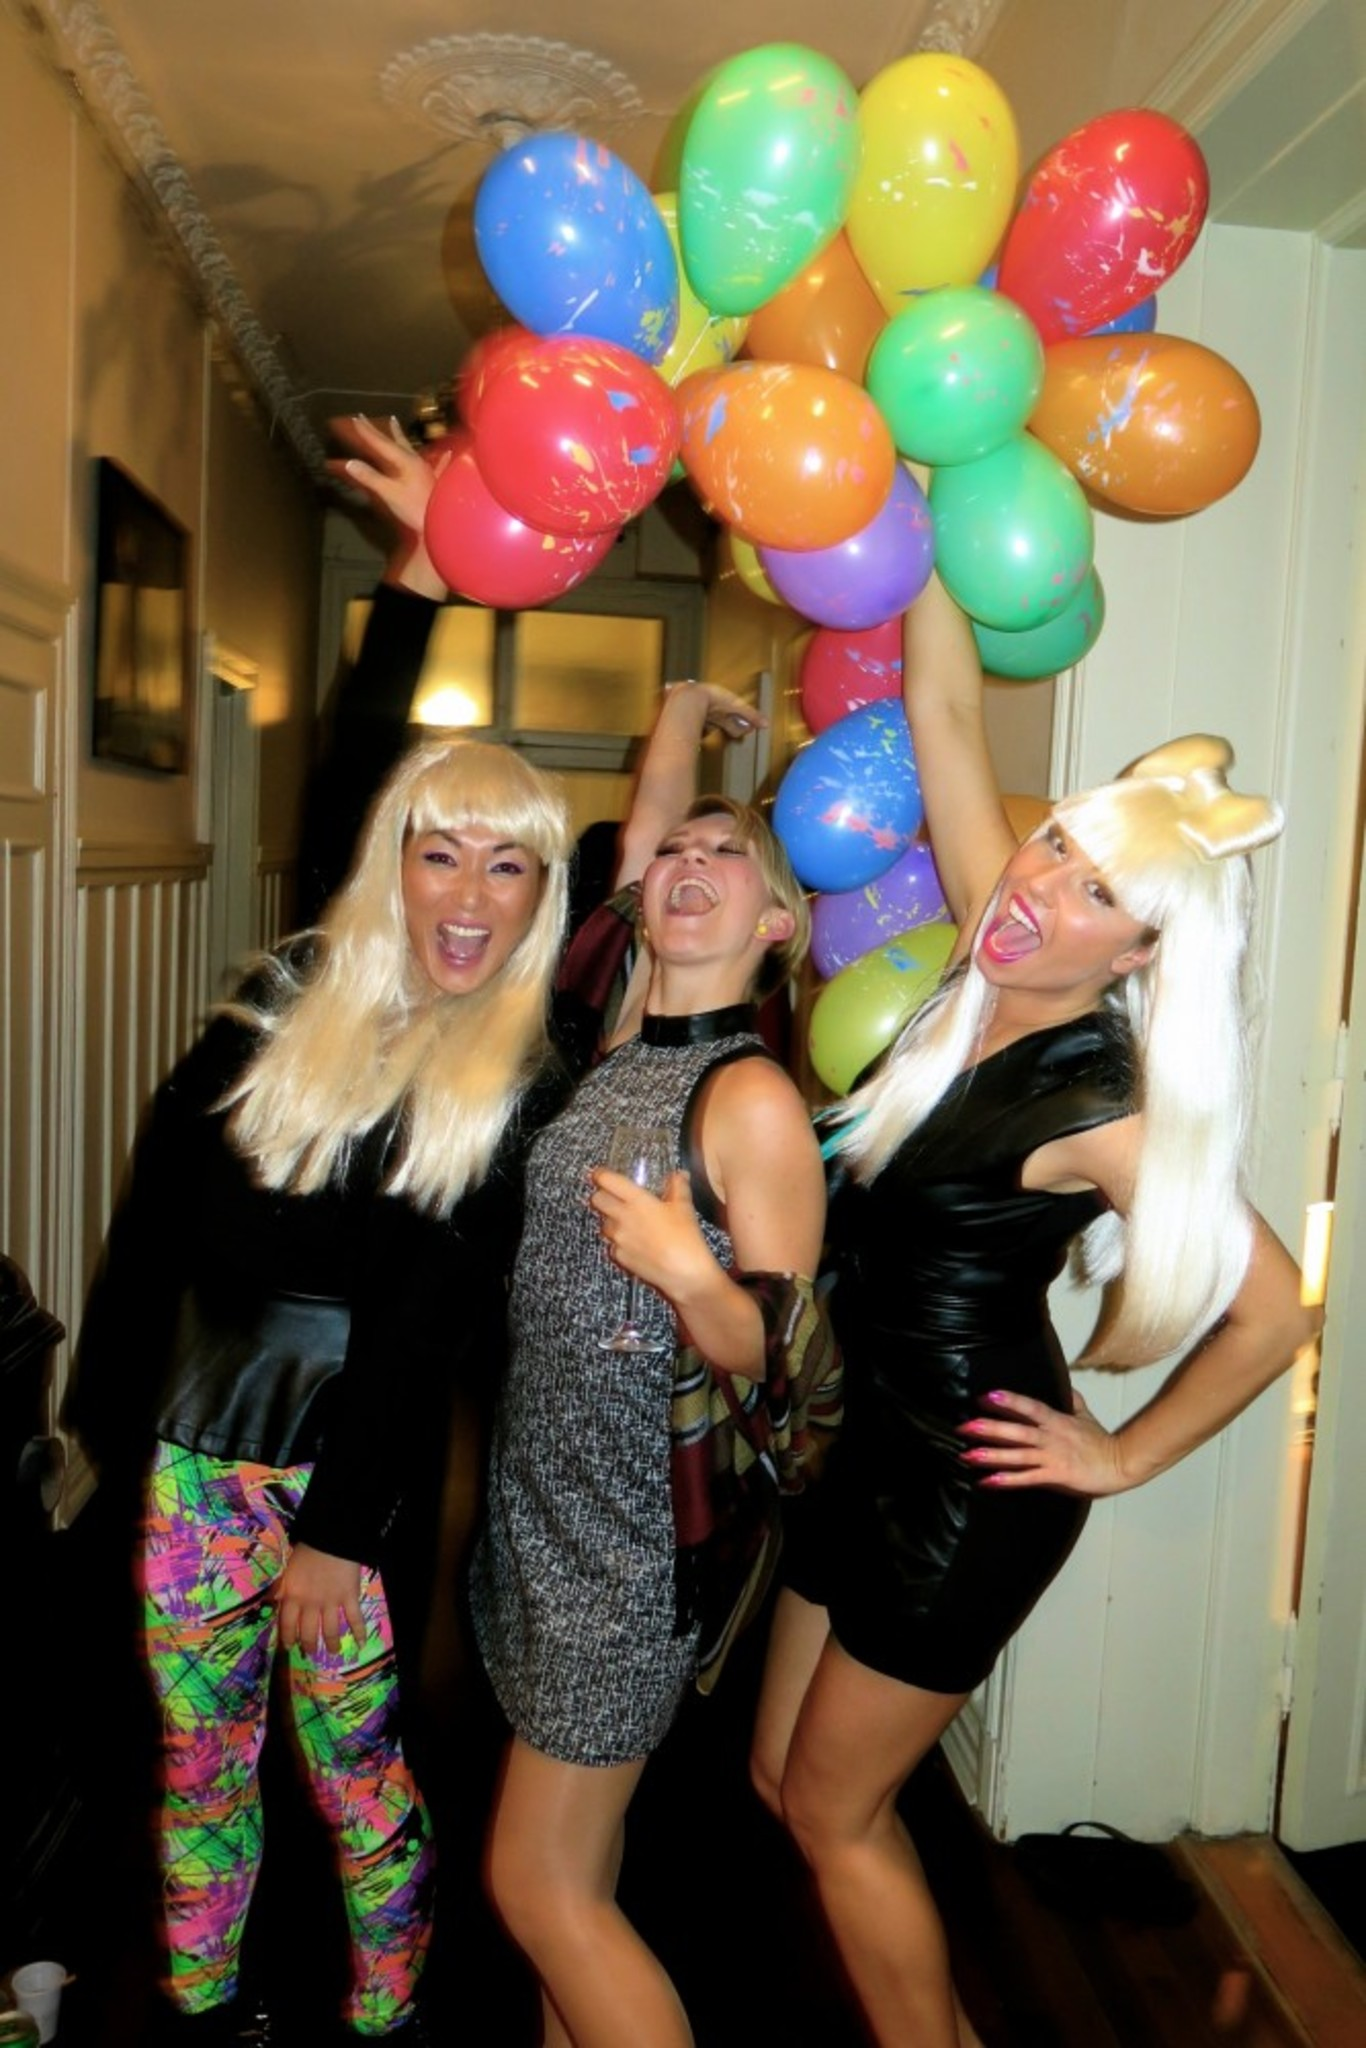 So Much Fuuuun!!! gaga #3, Twiggy & Gaga #2!